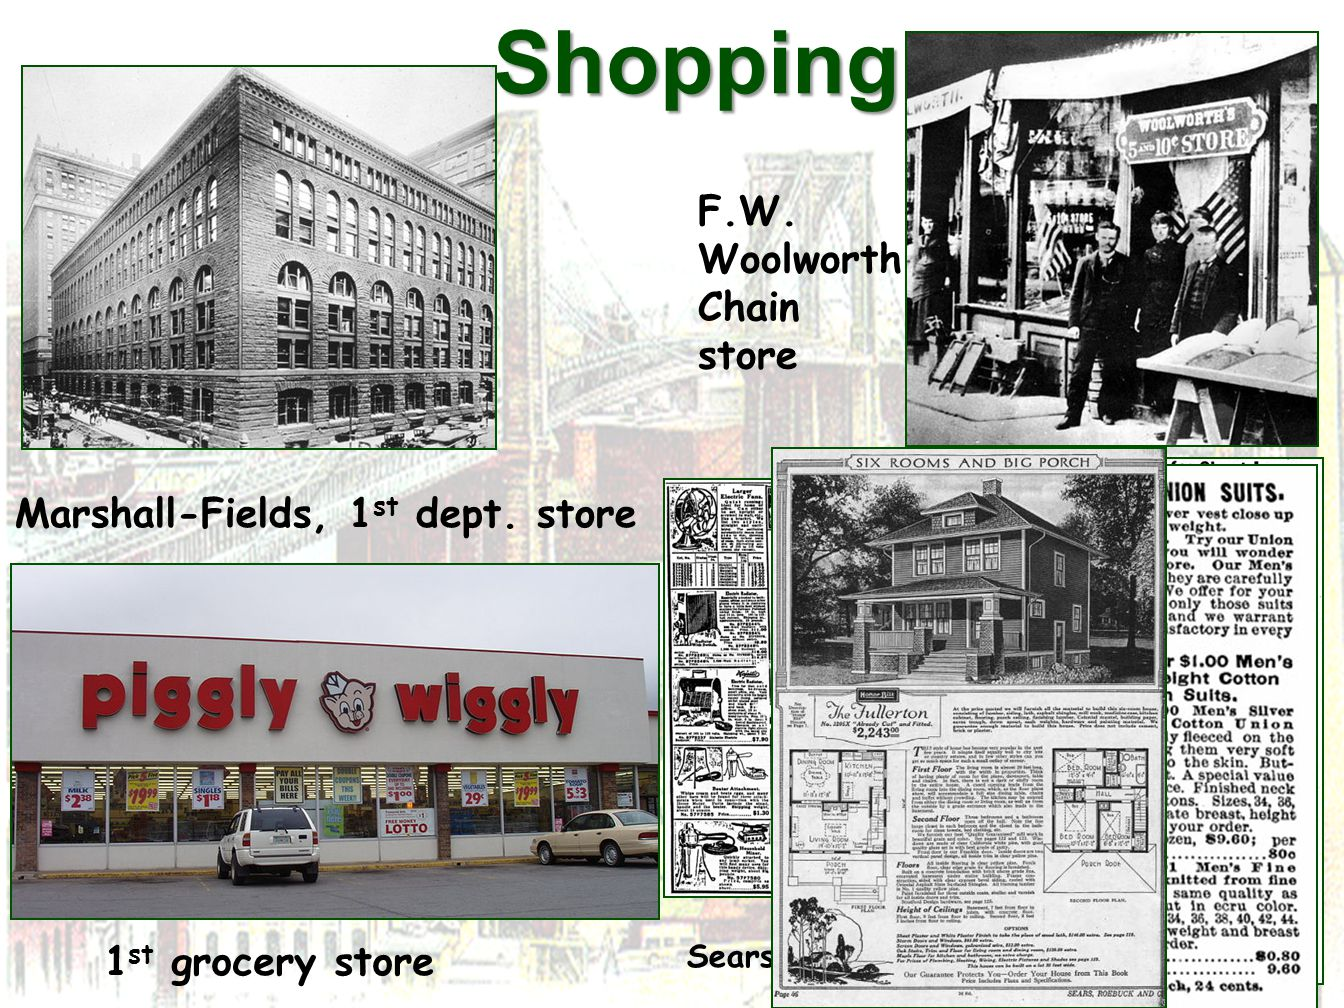 Shopping F.W. Woolworth Chain store Marshall-Fields, 1st dept. store